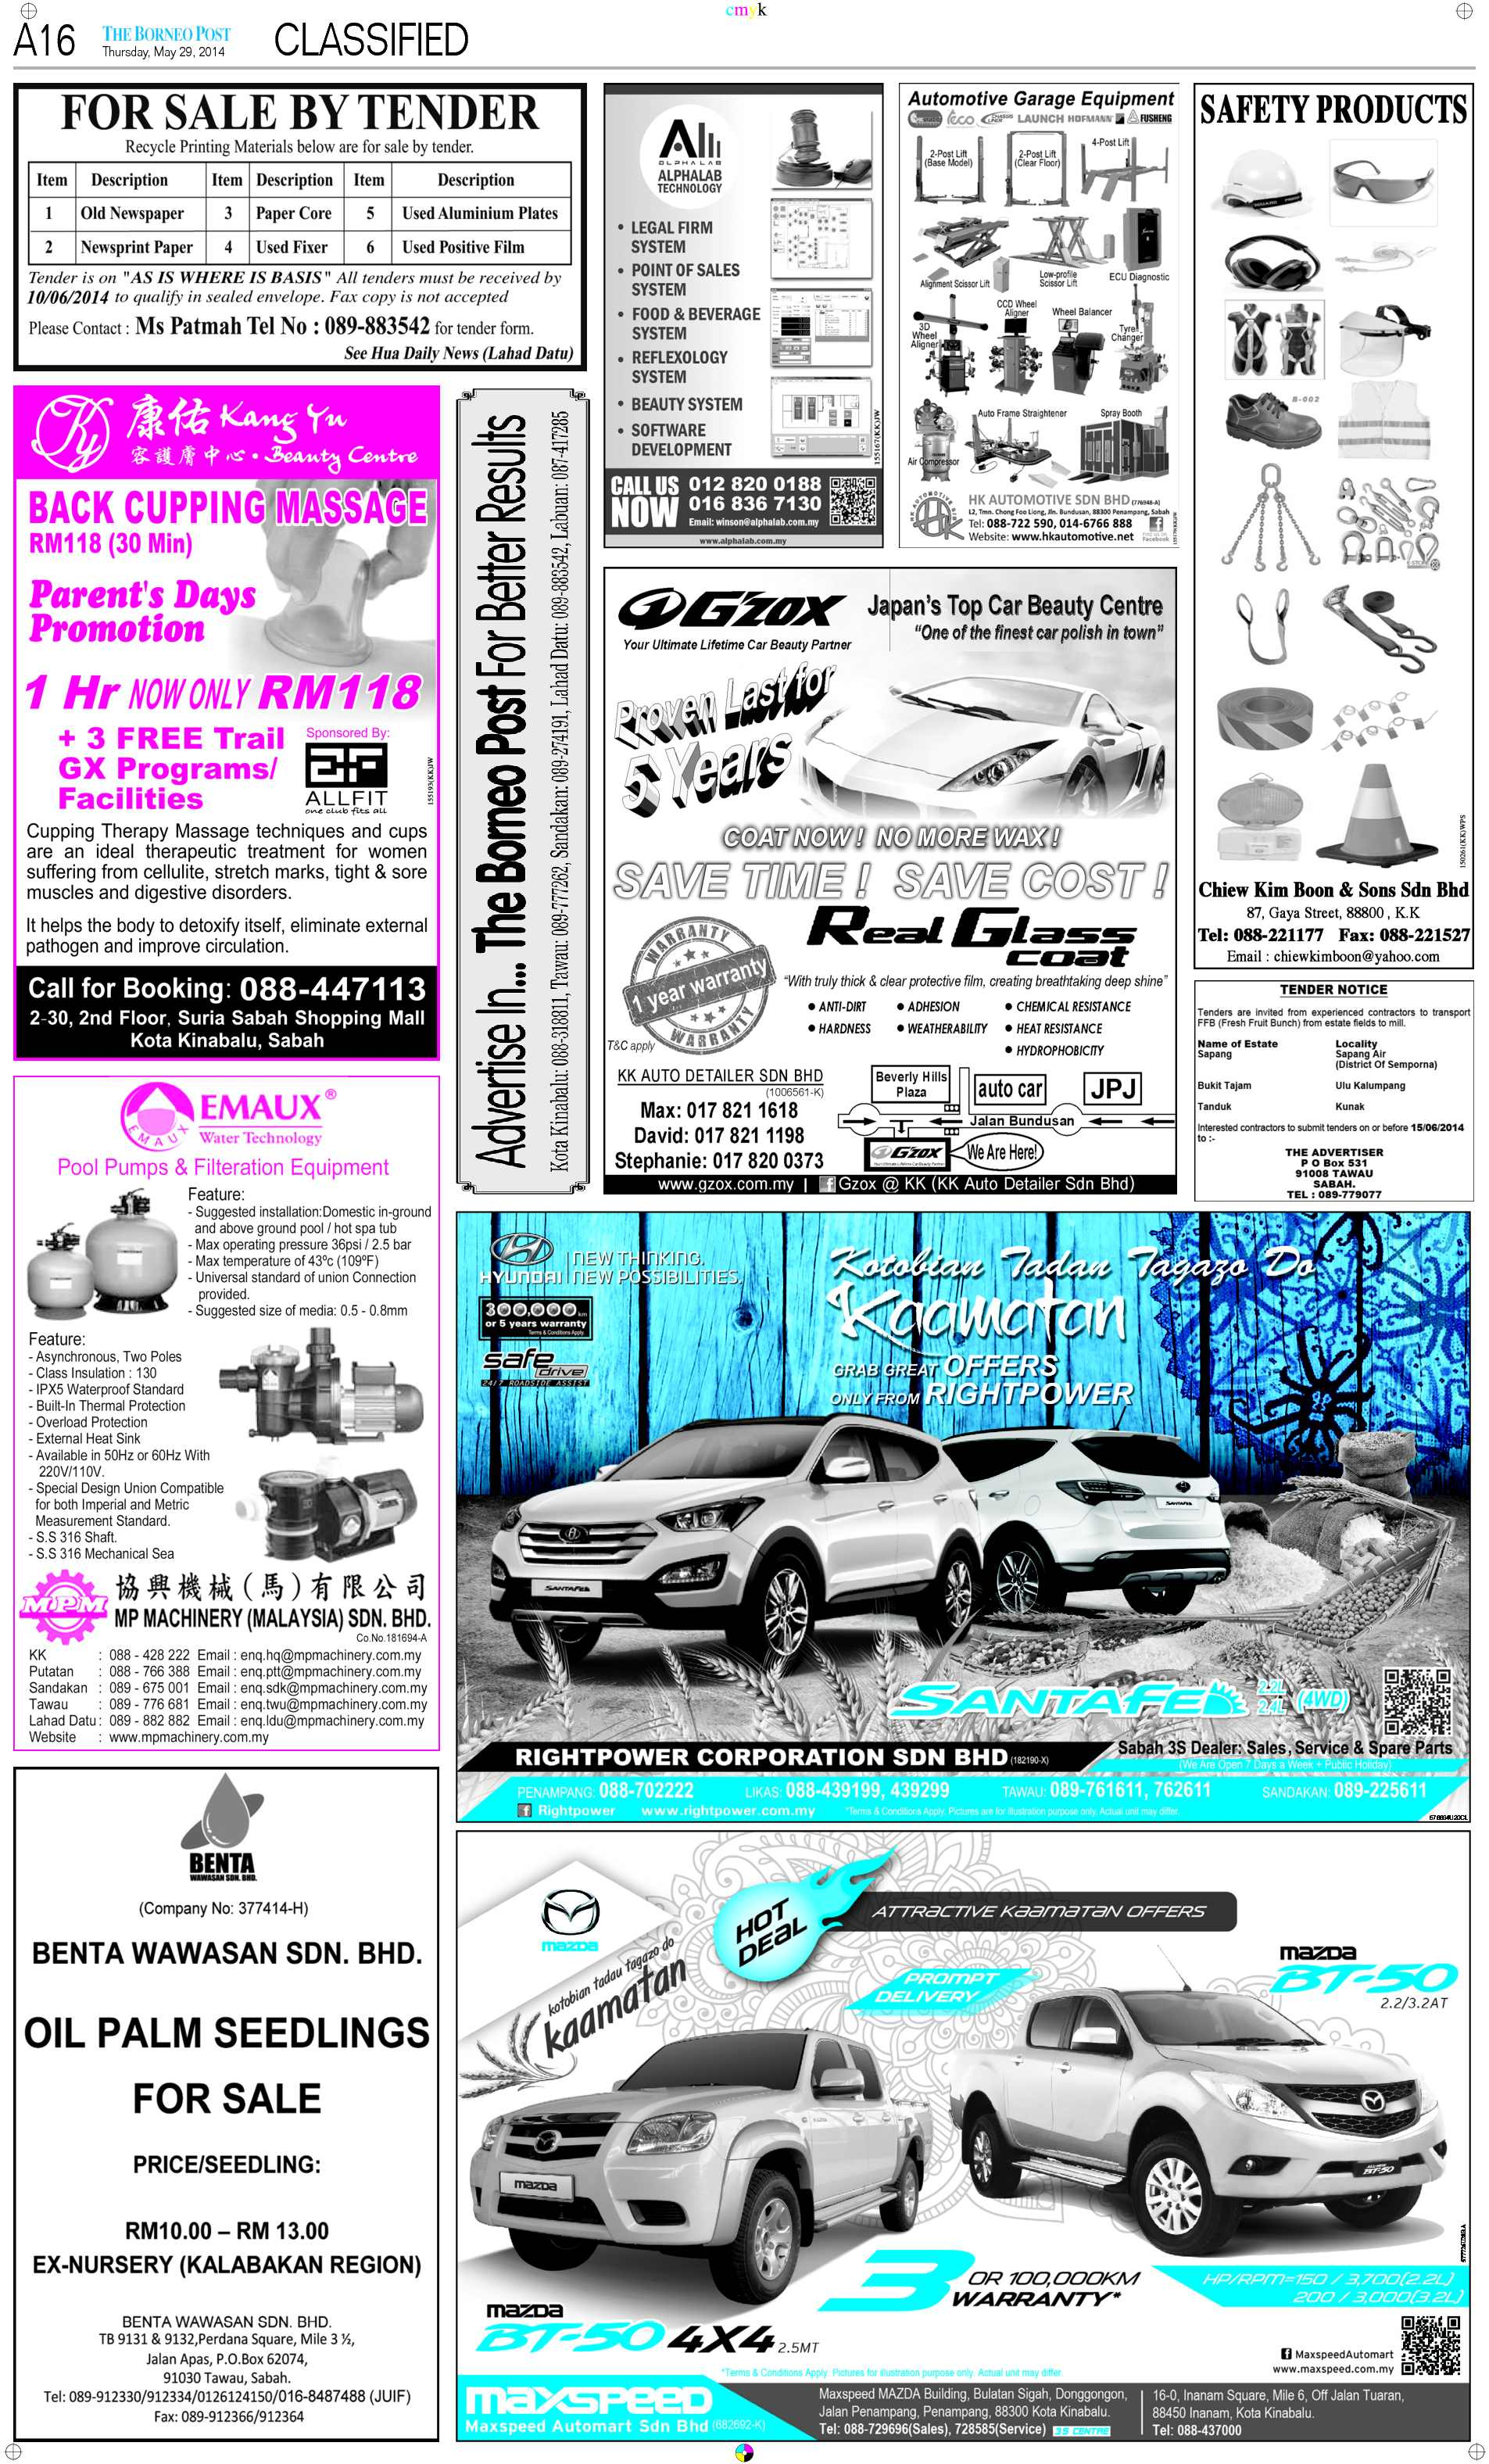 Thursday - May 29 | The Borneo Post Classifieds